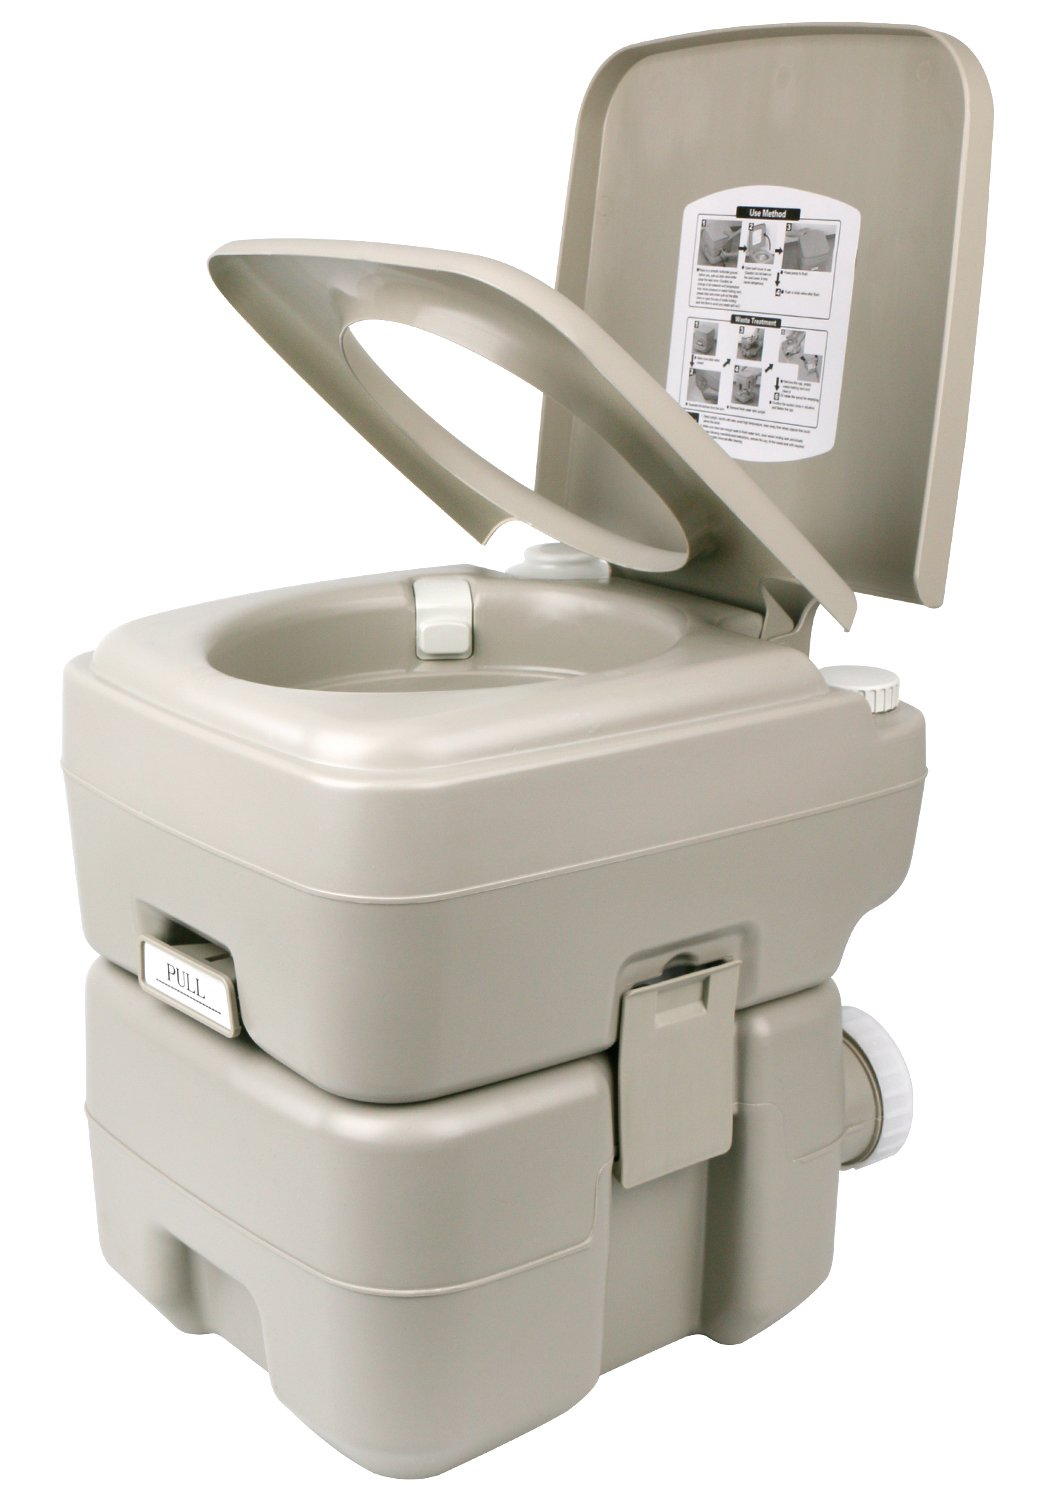 Leopard Outdoor T-Type Three Directional Flush Portable Travel Toilet for Camping,Boating,Hiking,Portable RV Toilets - 5.3 Gallon by Leopard Outdoor Products